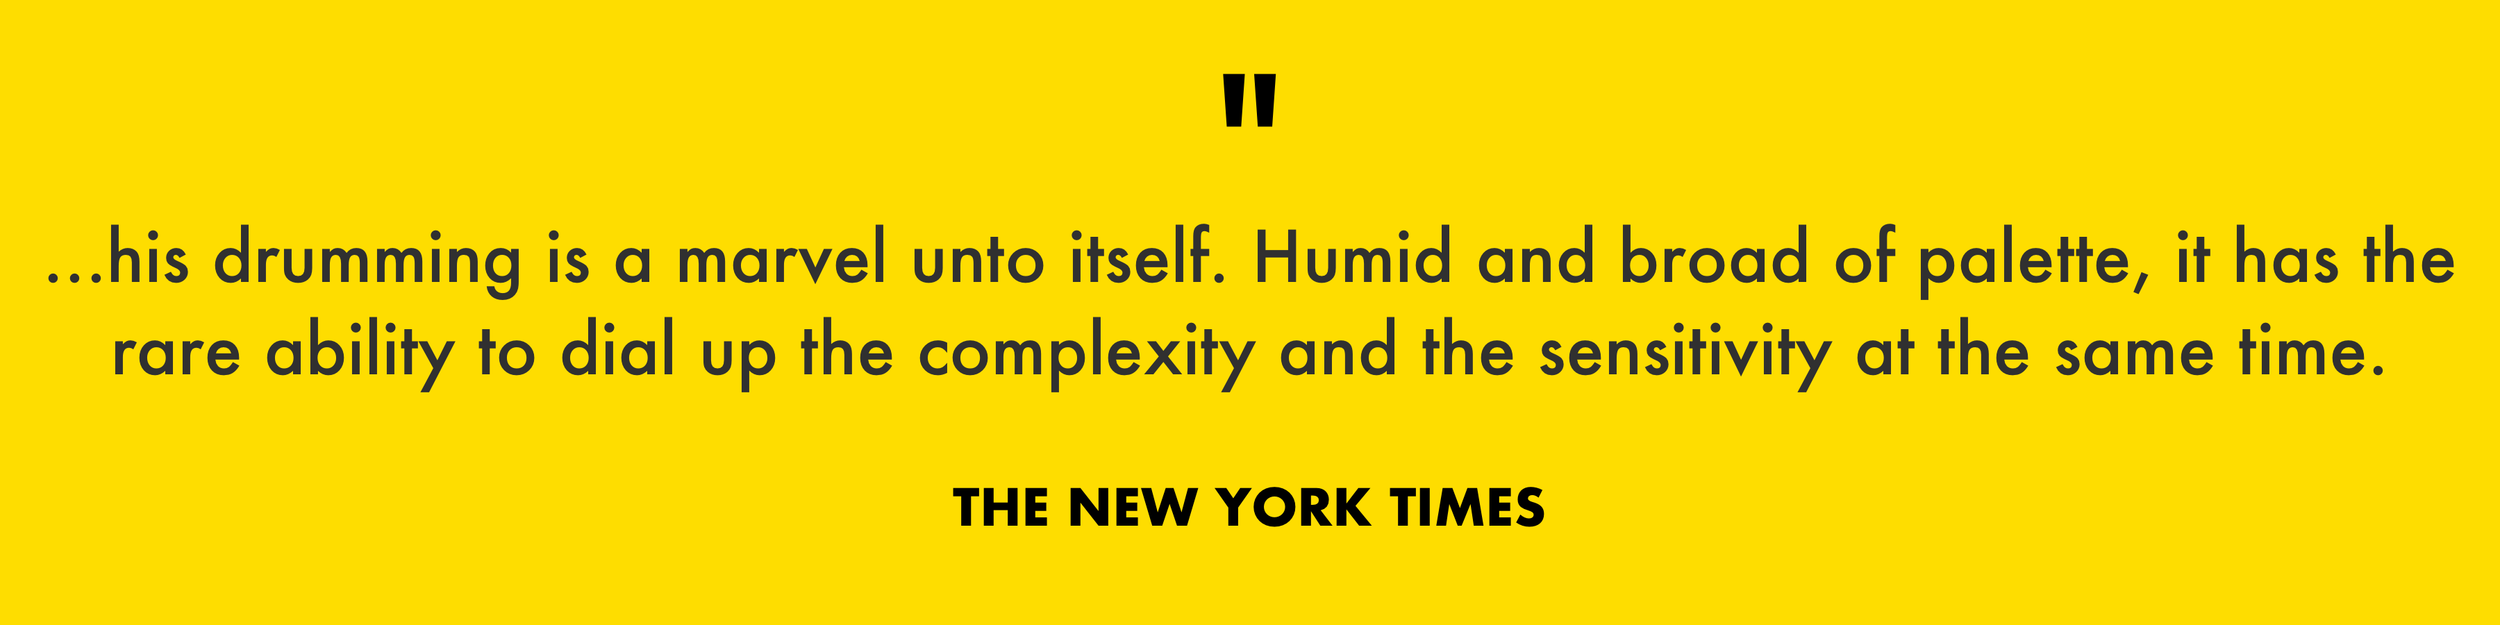 Qoute_NYTimes-yellow.png